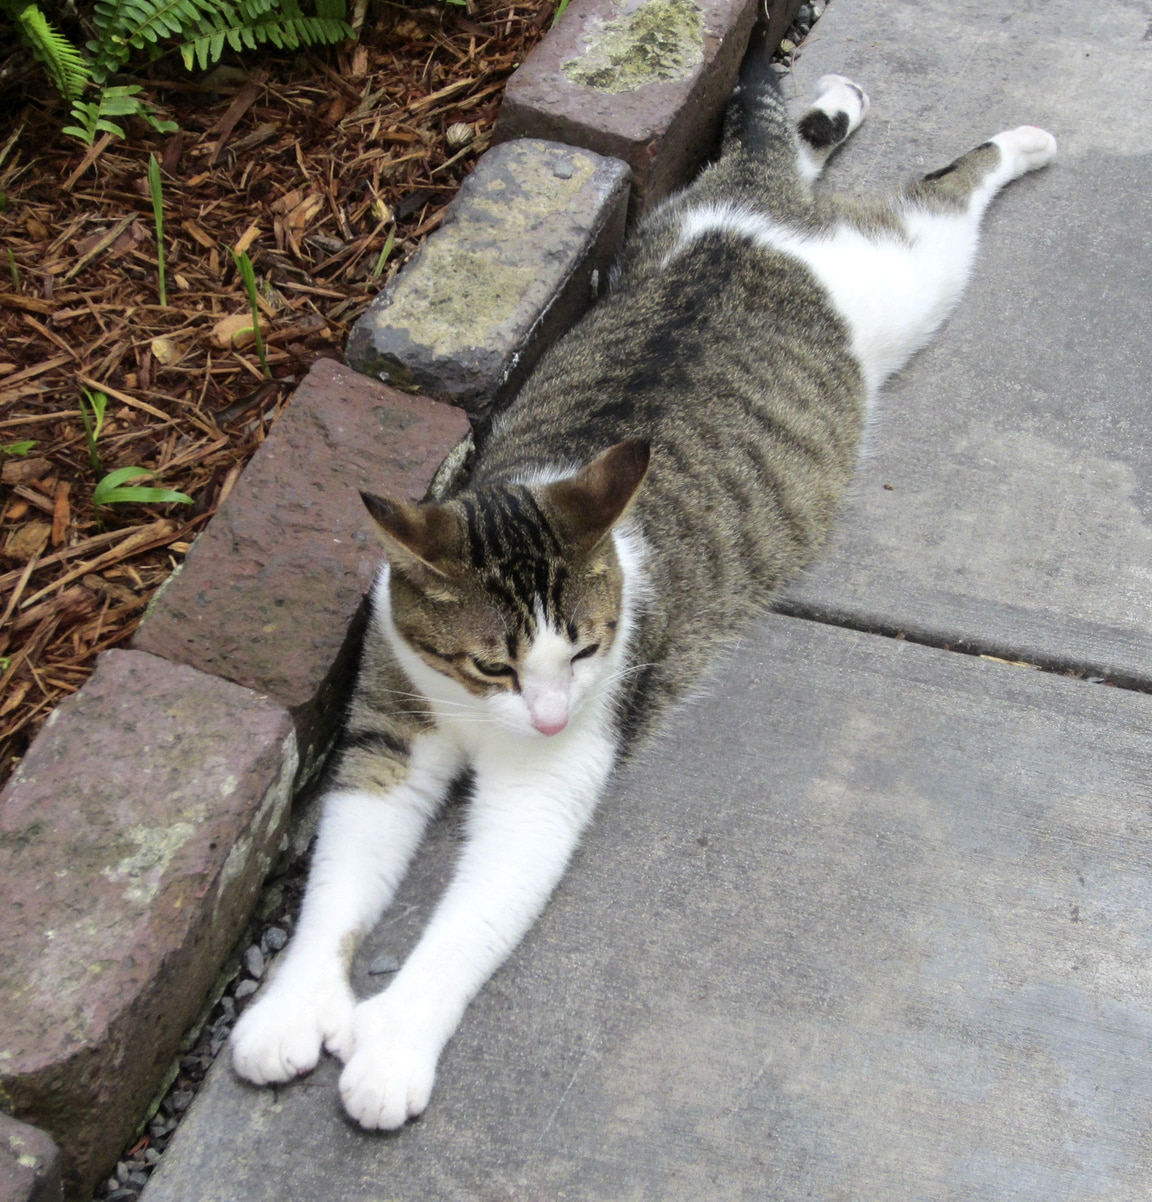 polydactyl gray and white cat stretching on the concrete